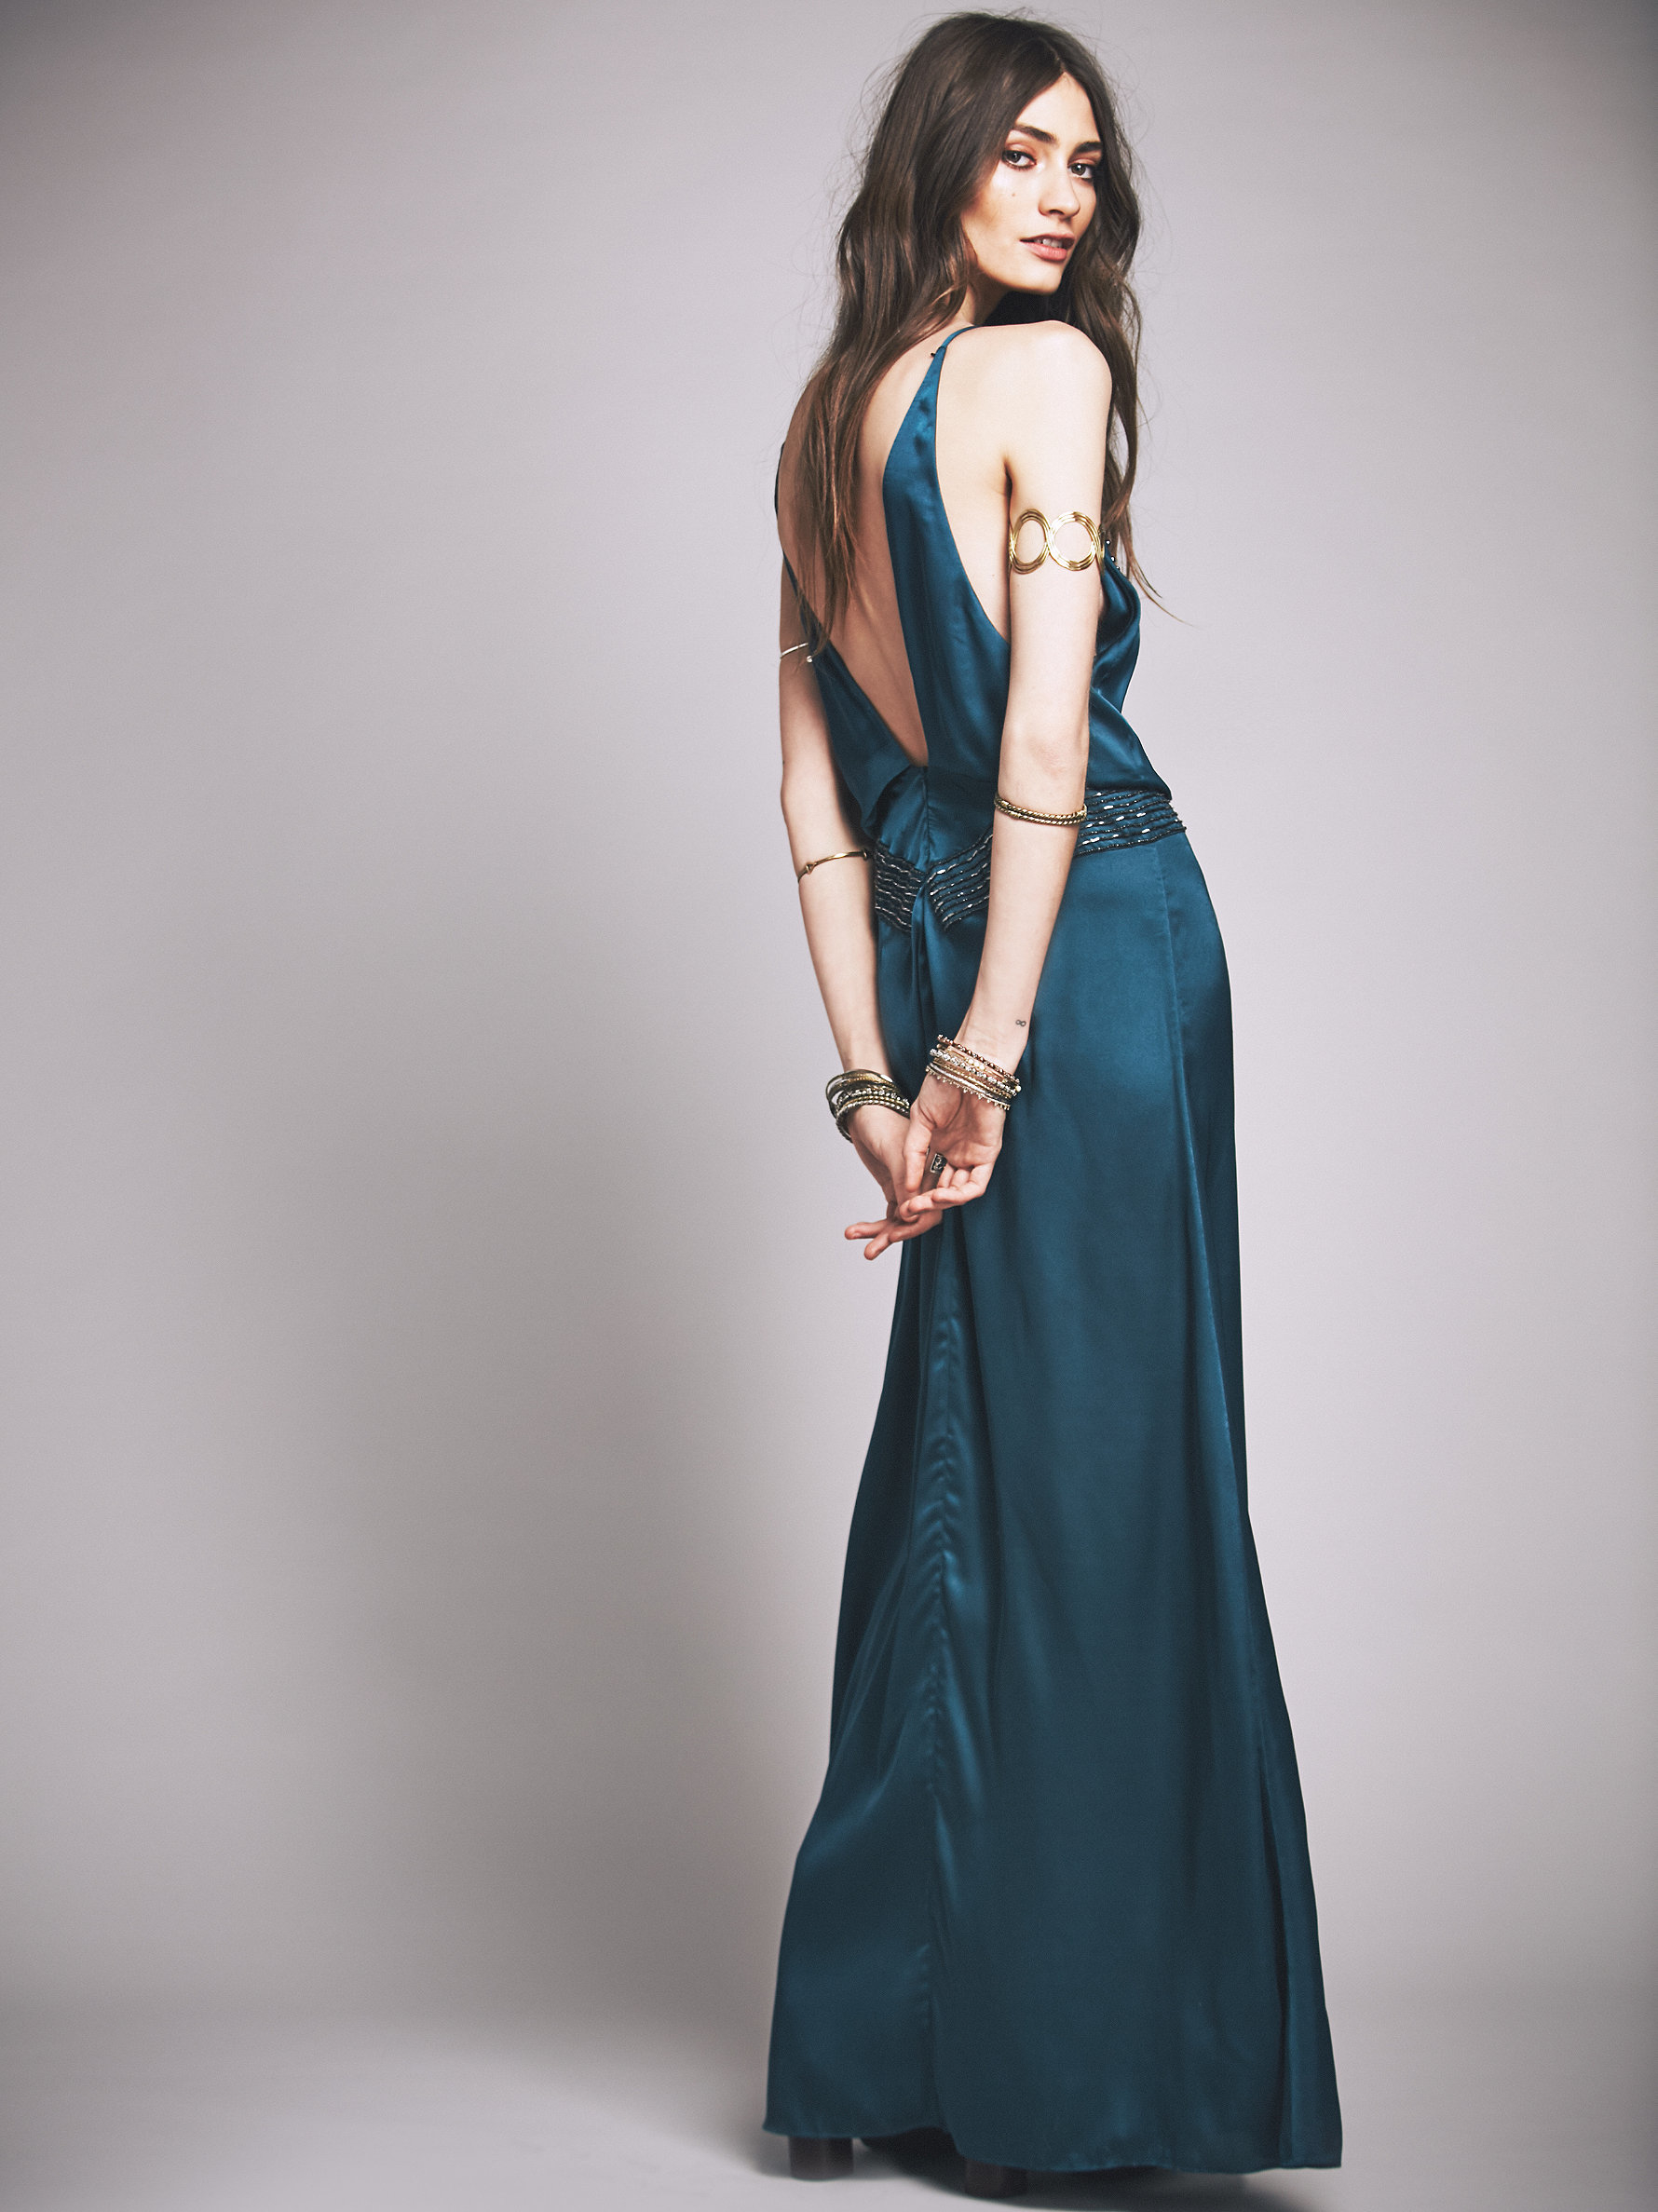 Lyst - Free People Jaded Gown in Blue